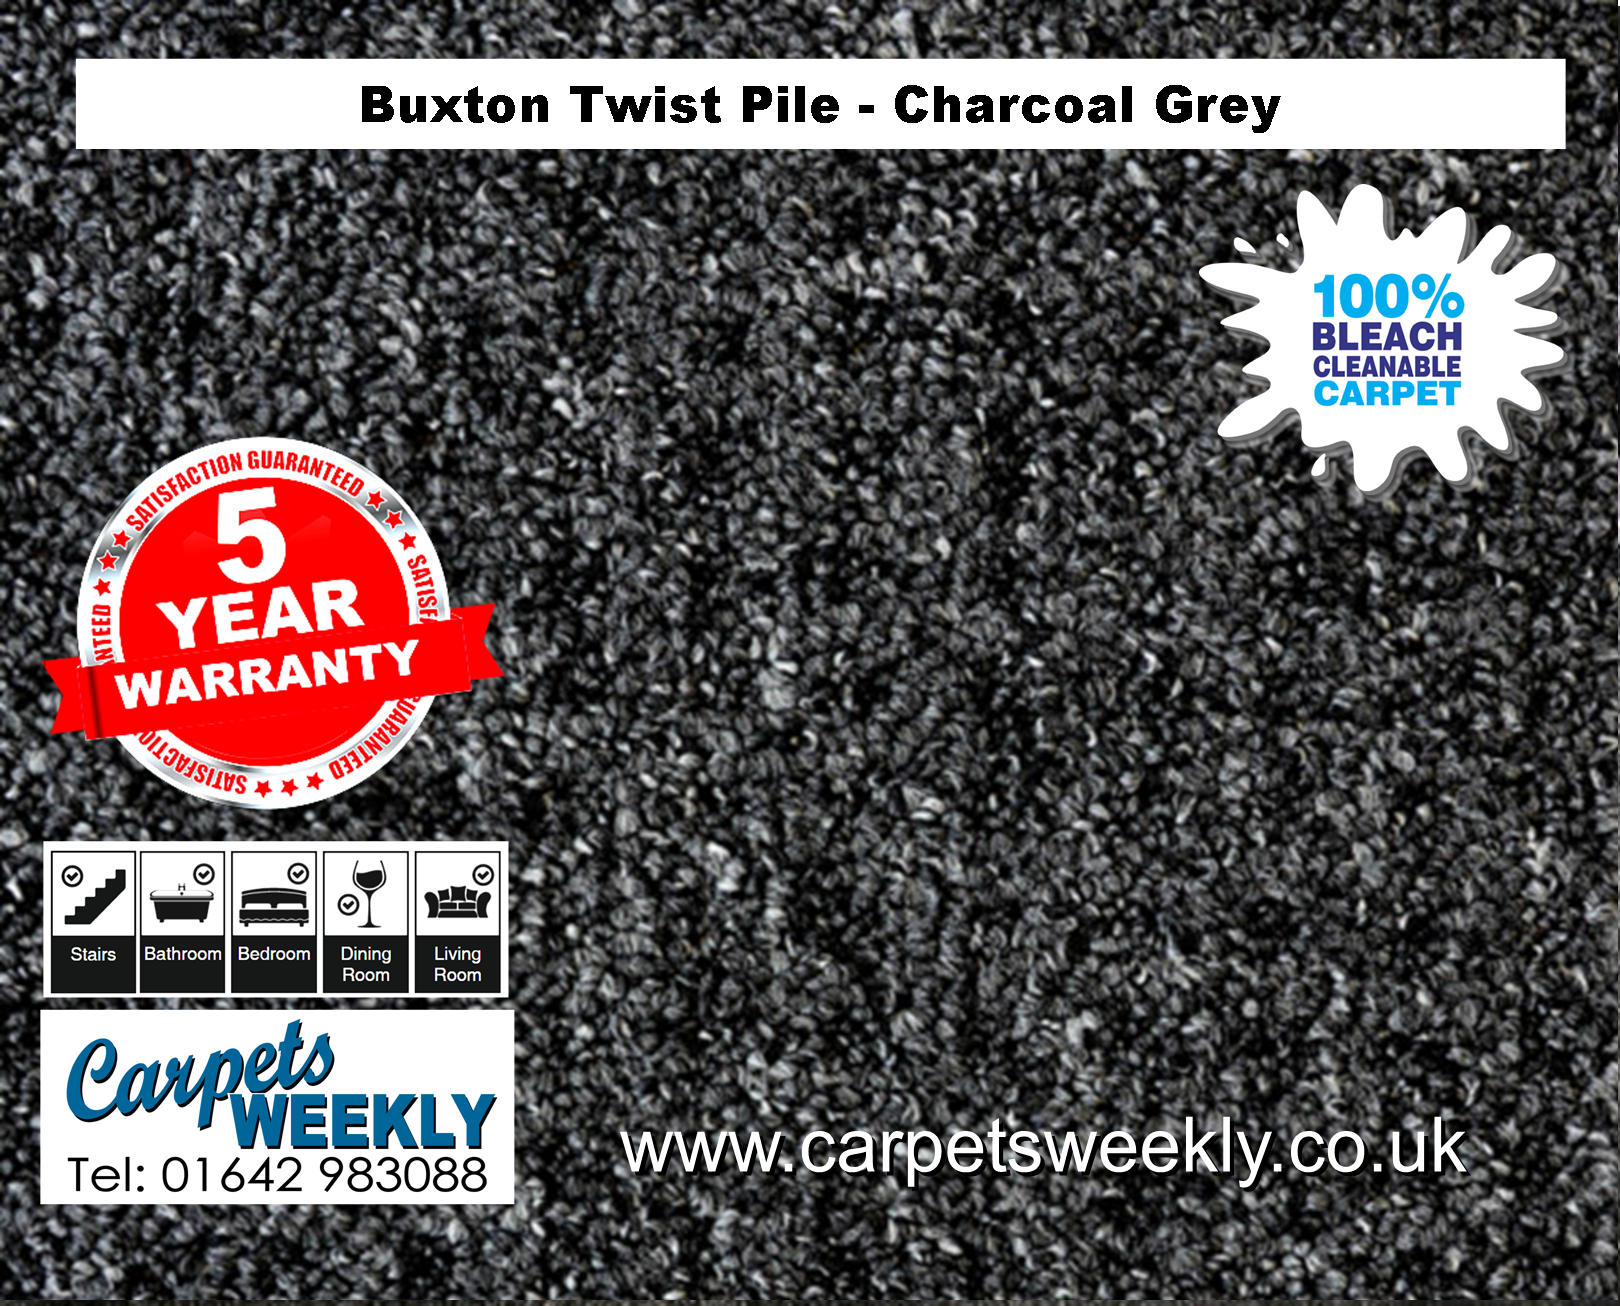 Buxton Monet Twist Pile Carpet Charcoal Grey from Carpets Weekly